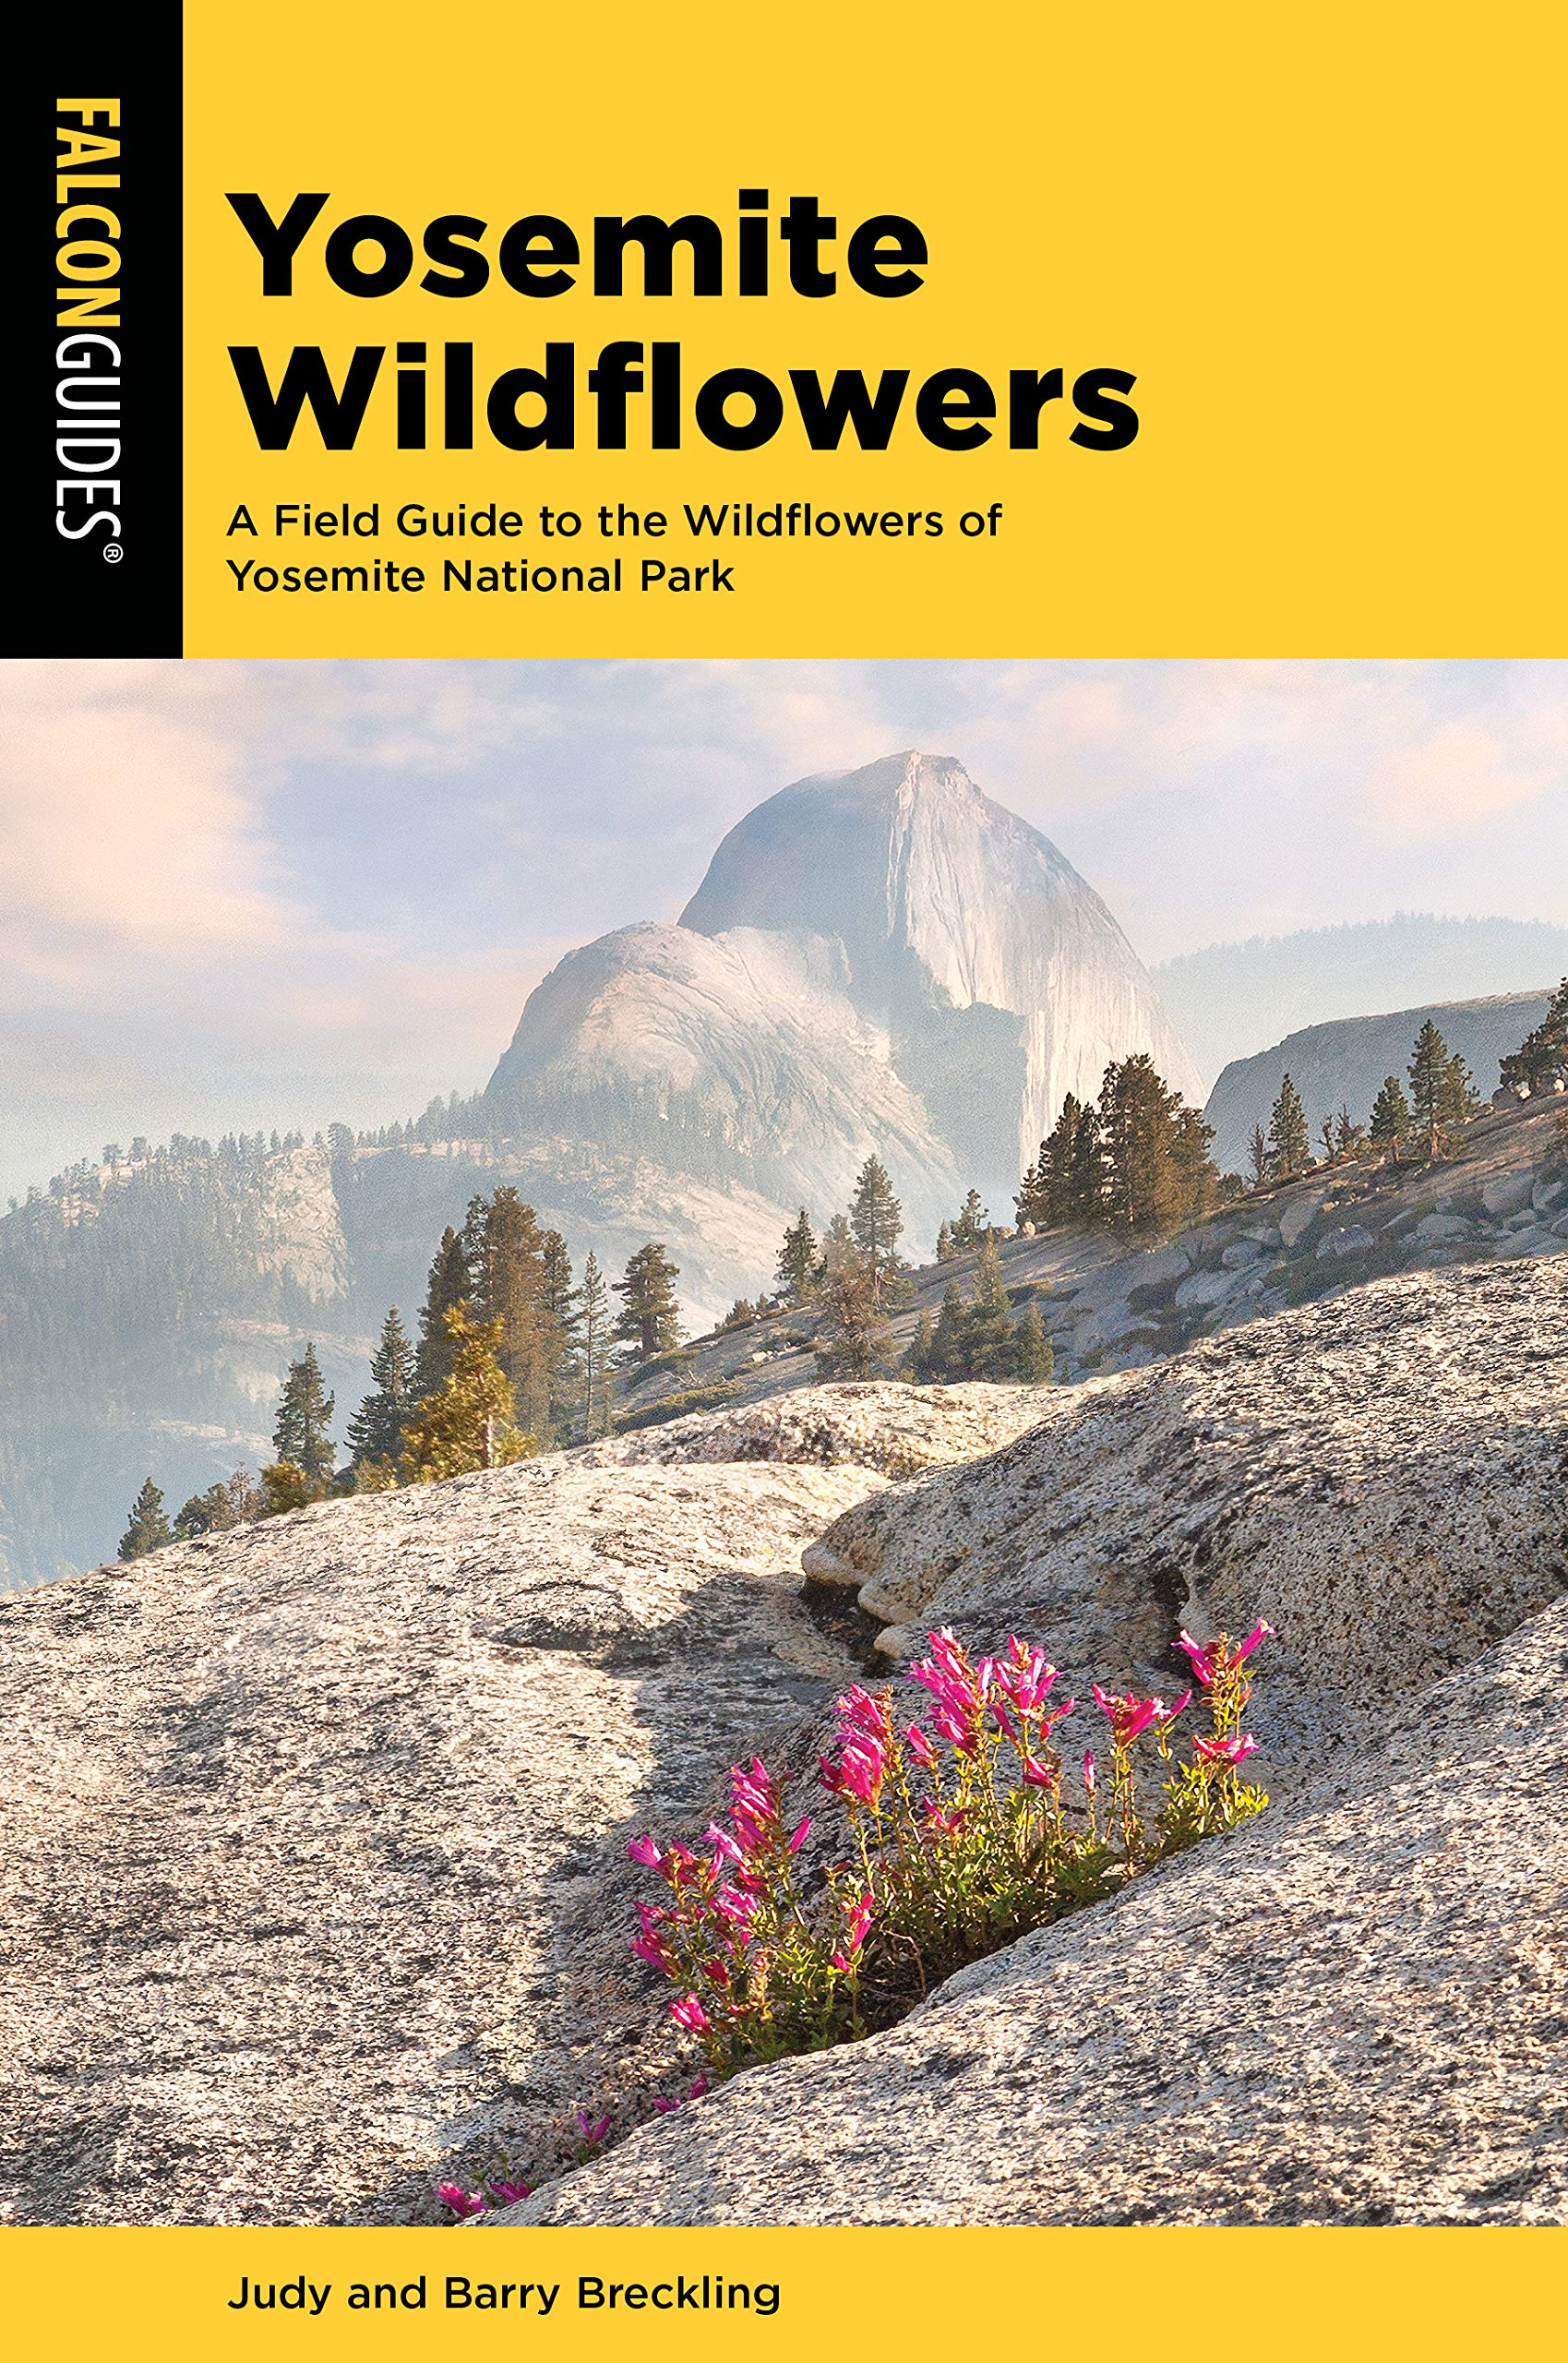 Yosemite Wildflowers: A Field Guide to the Wildflowers of Yosemite National Park (Wildflower Series)